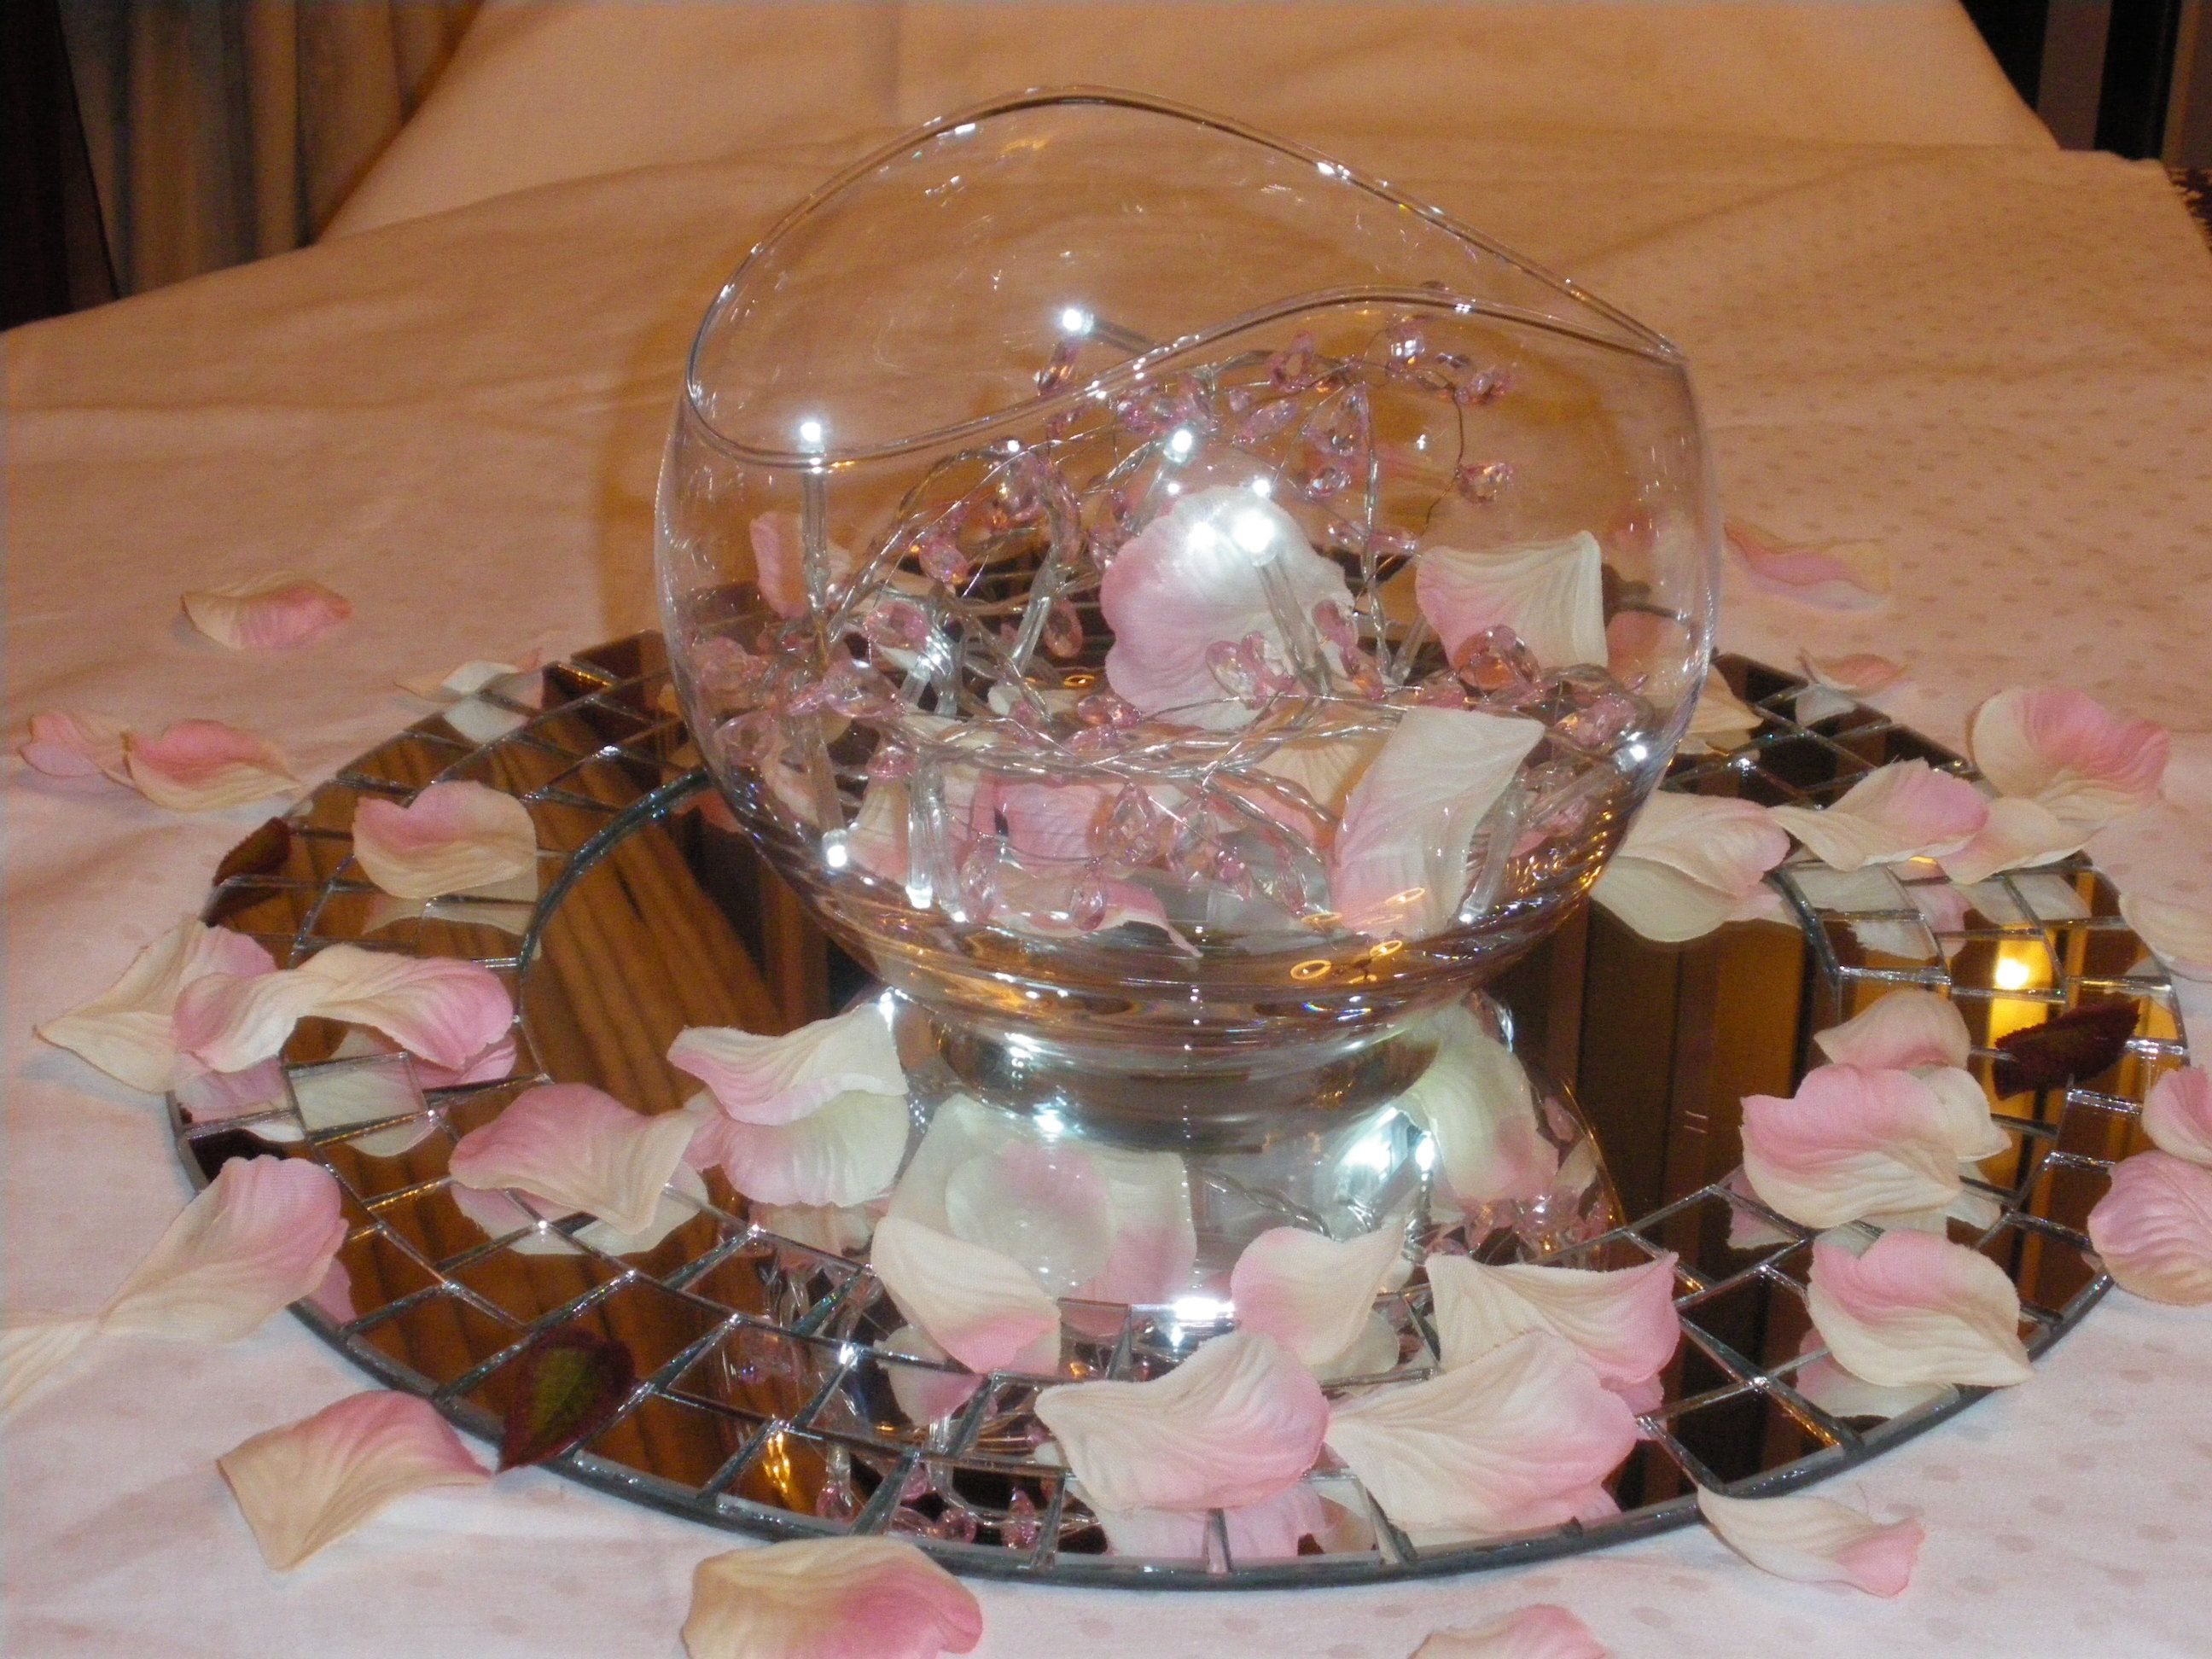 Fairy Lights u0026 Goldfish Bowl Centrepieces - Wedding Forum | You u0026 Your Wedding & Fairy Lights u0026 Goldfish Bowl Centrepieces - Wedding Forum | You ...